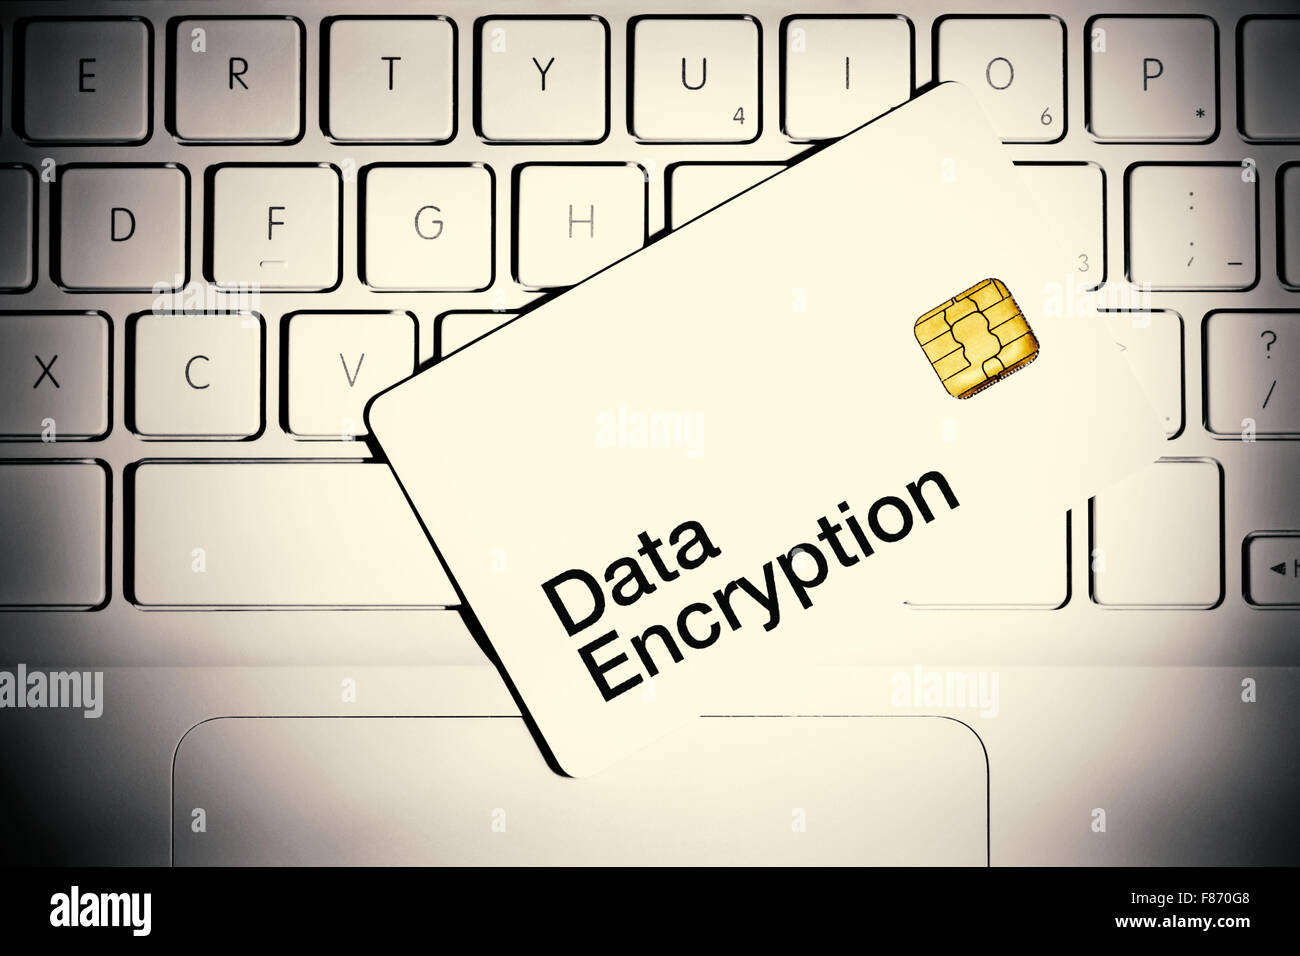 Data Encryption concept. Smart card on a keyboard of white laptop computer. - Stock Image